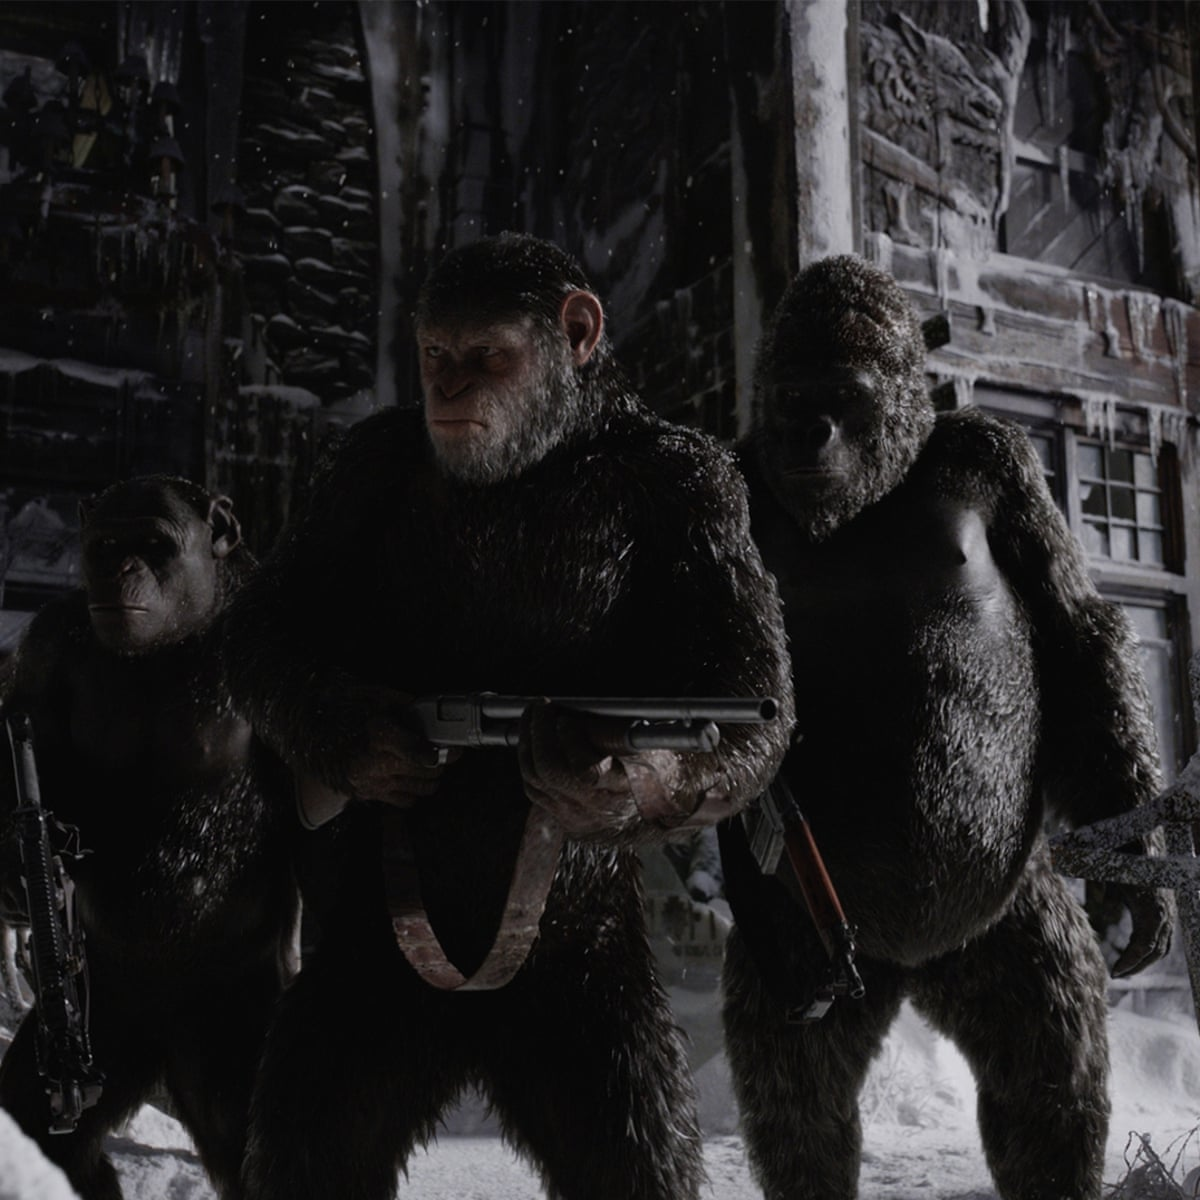 War For The Planet Of The Apes Review It S Simians V Humans In Another Absorbing Episode Film The Guardian